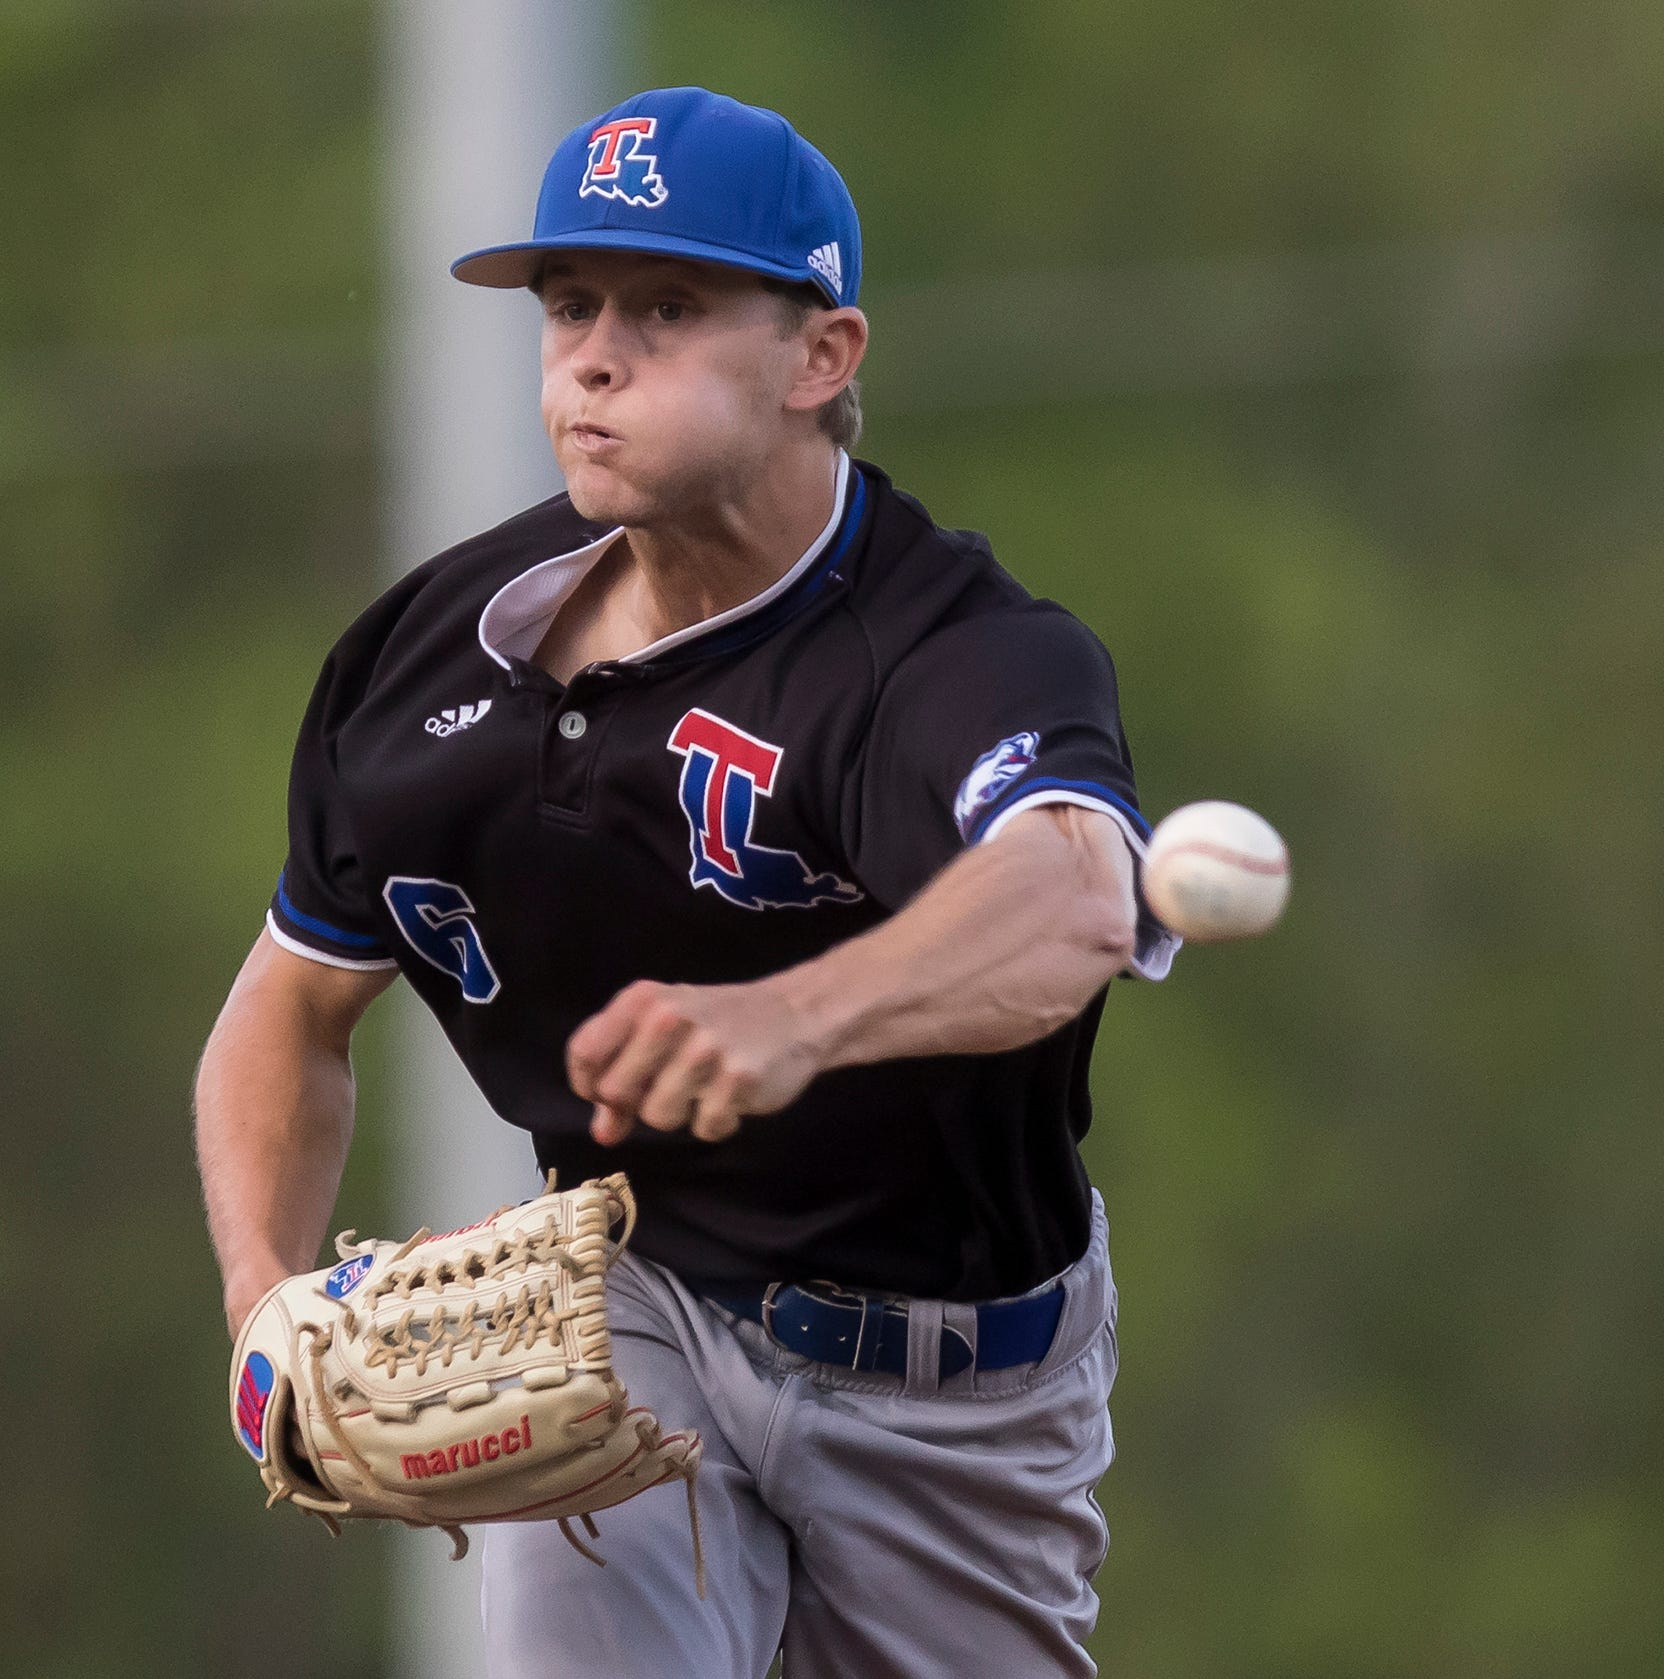 Louisiana Tech's Kyle Griffen (6) releases a pitch during the game against University of Louisiana at Monroe at Warhawk Field on April 16. Tech would blank ULM 5-0.